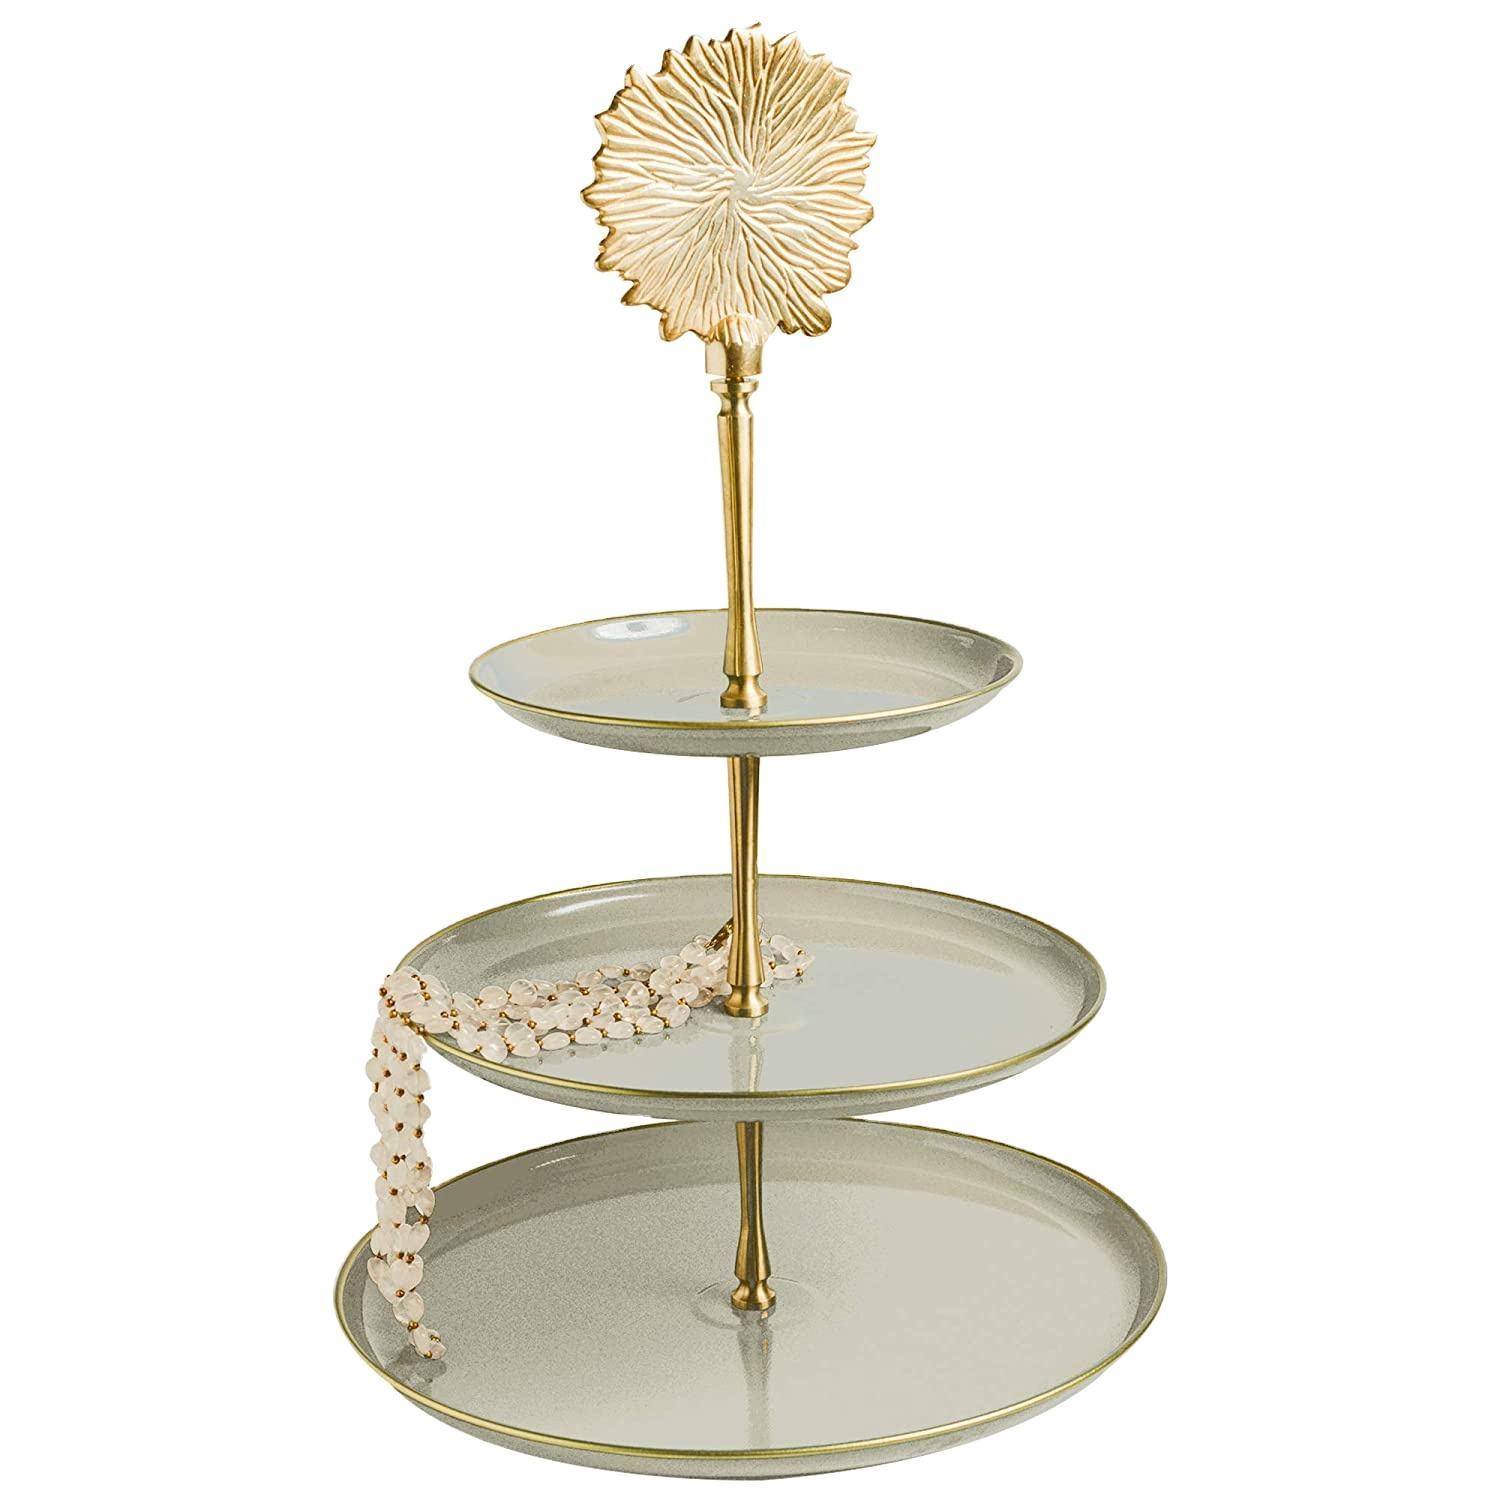 Unique design Stylish metal 3 tier cake stand made in India